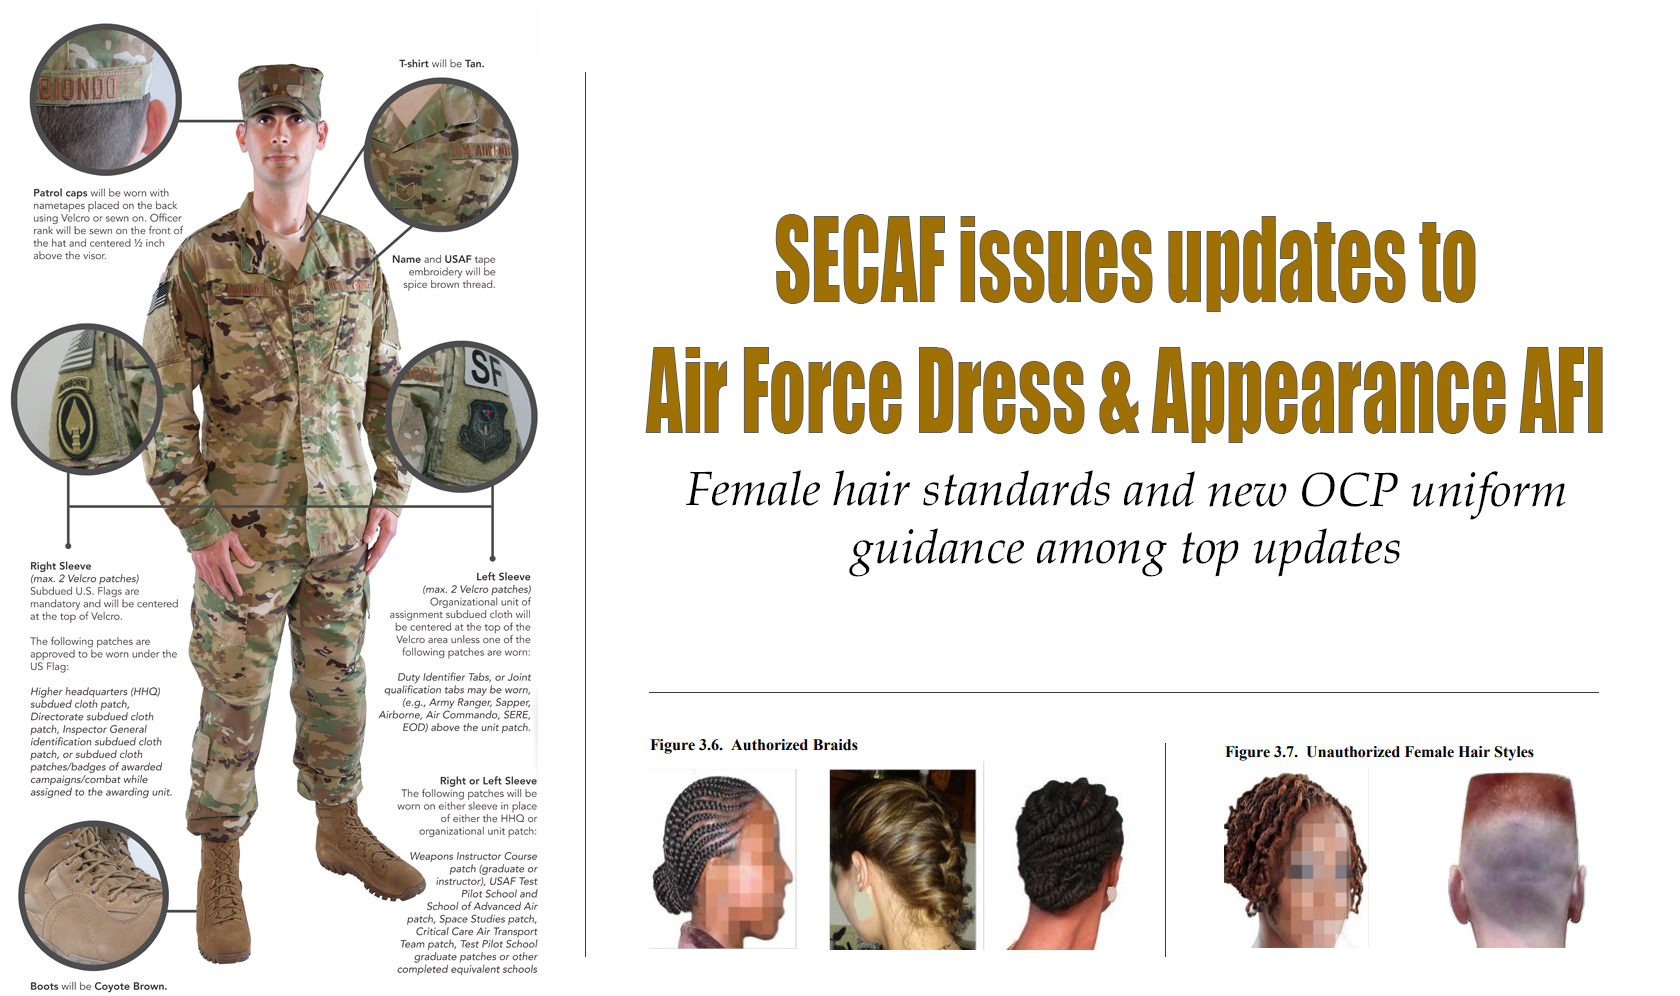 air force grooming standards: haircut and beard regulations